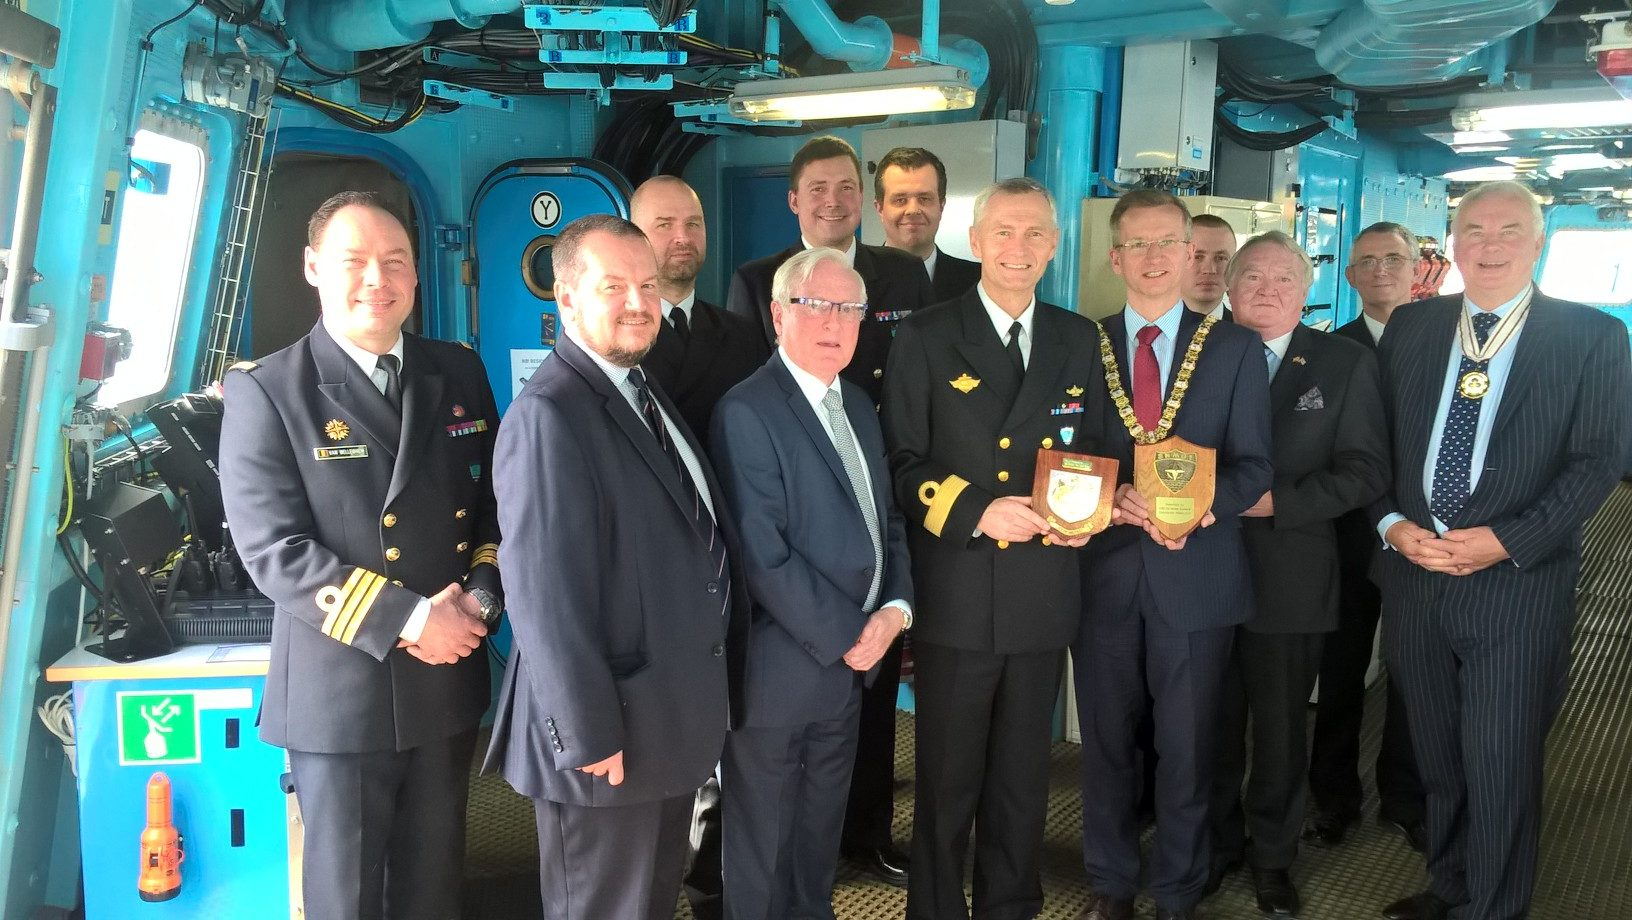 Visit of .HNoMS Roald Amundsen to Belfast with Lord Mayor,fellow DL Alastair Adair and the Honorary Norwegian consul Michael Ewing also present was Commander John Gray RN Senior Naval Officer Northern Ireland the lunch was hosted by Commodore Ole Morten Sandquist,RNoM and his officers.